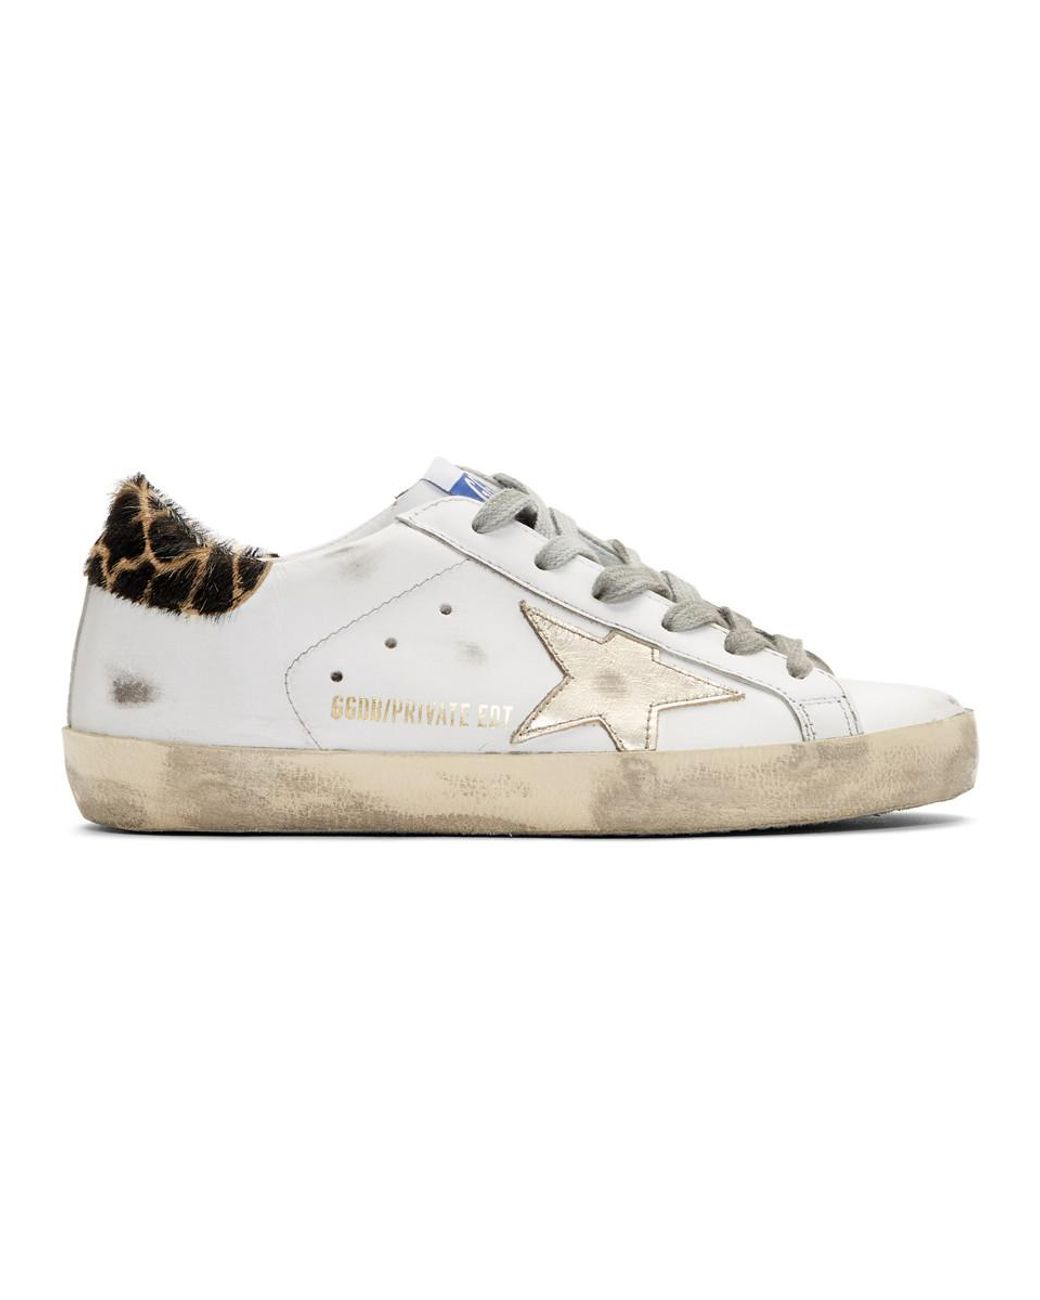 And Gold Giraffe Superstar Sneakers - Lyst